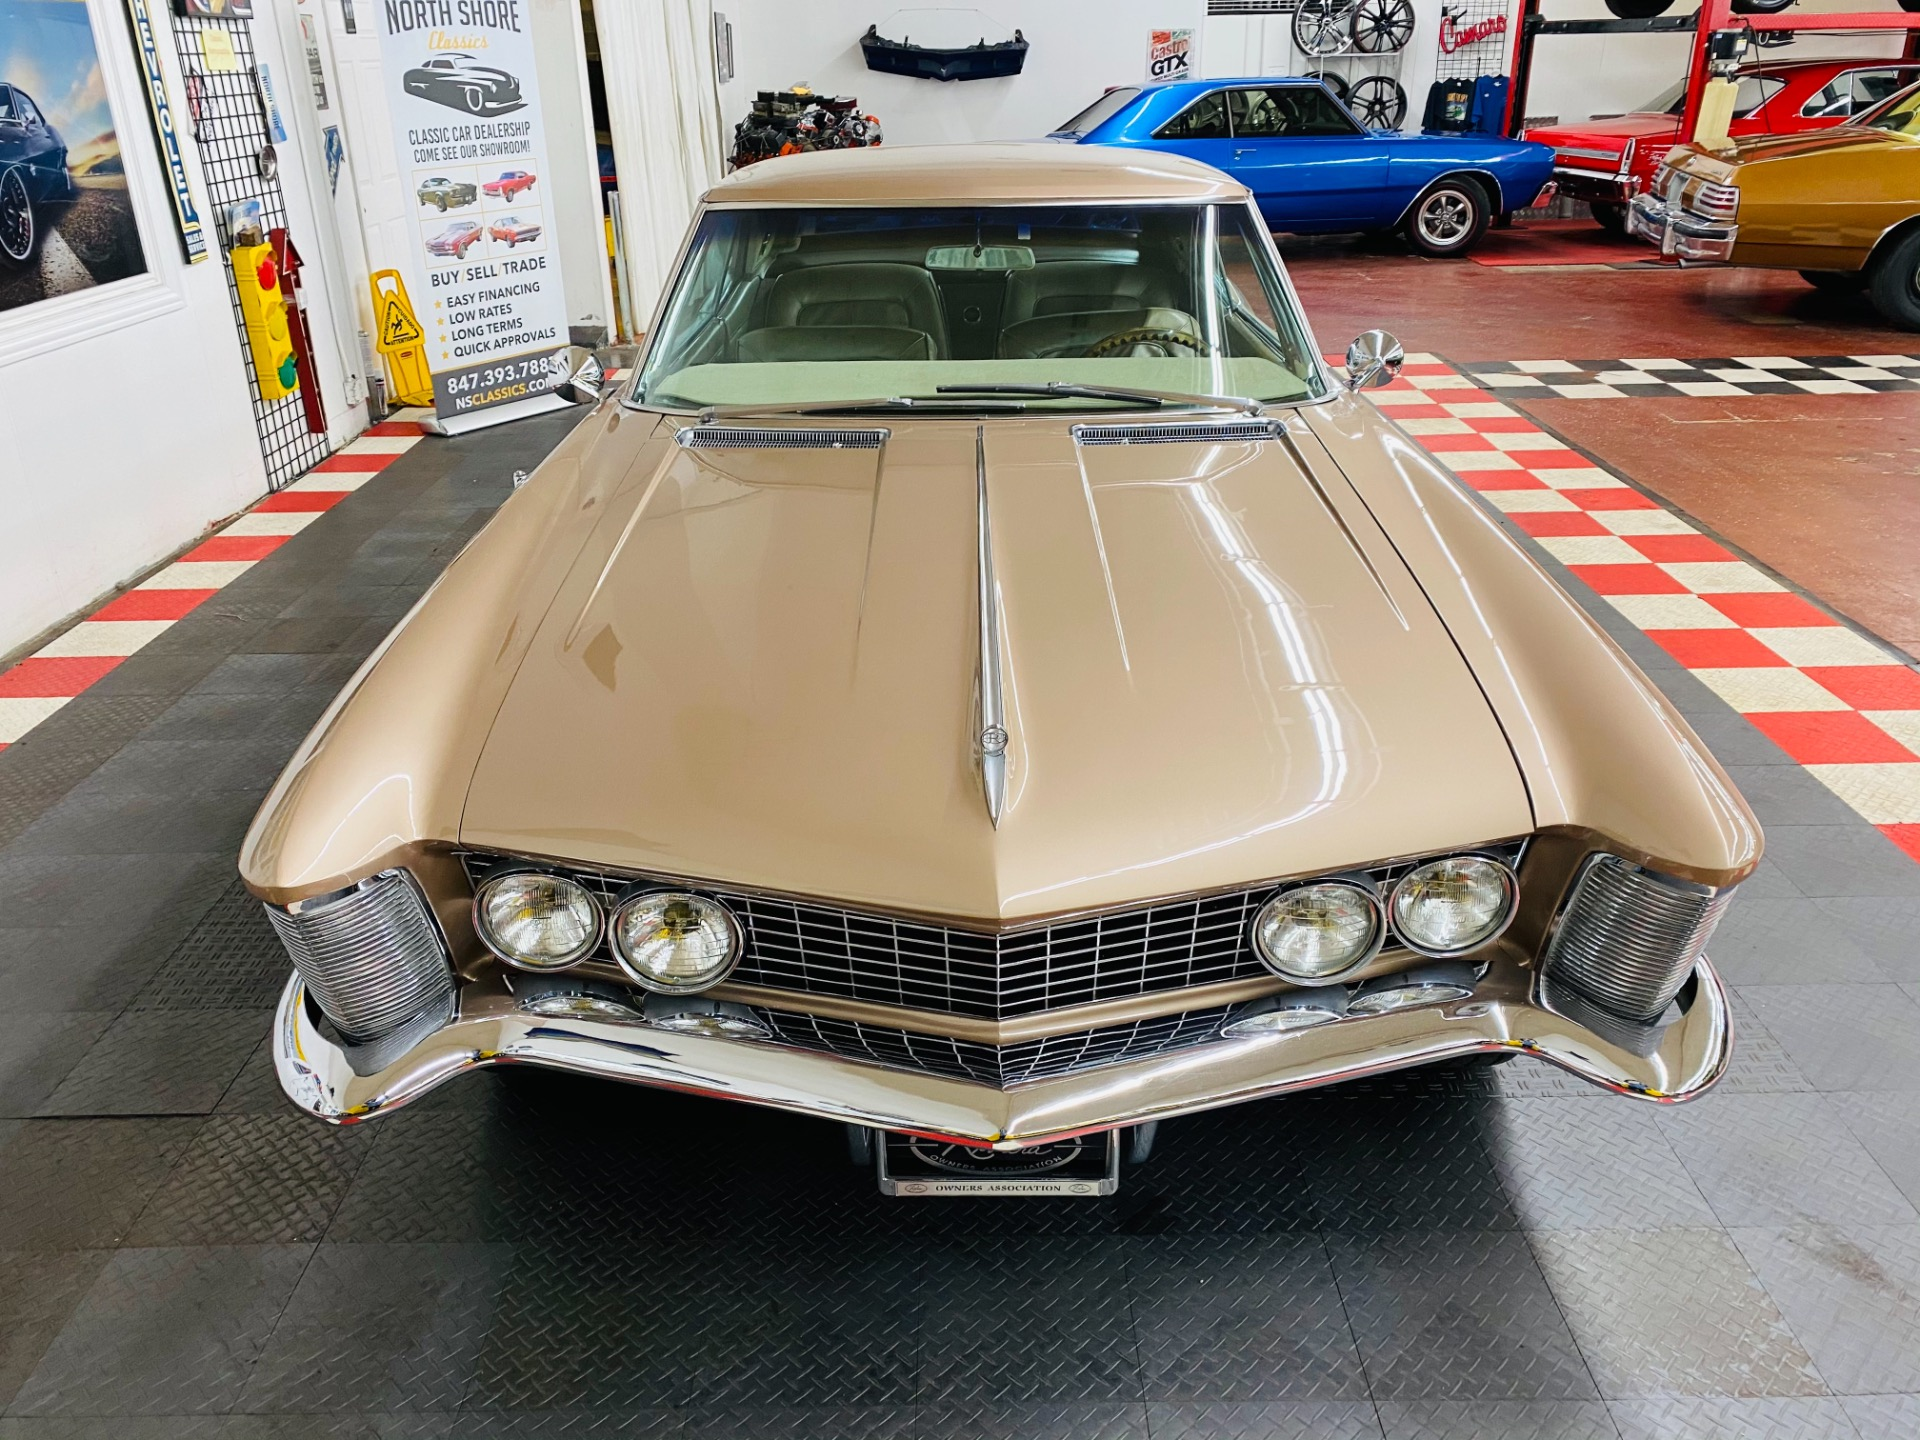 Used 1964 Buick Riviera - 425 WILDCAT ENGINE - HIGH QUALITY RESTORATION - SEE VIDEO | Mundelein, IL